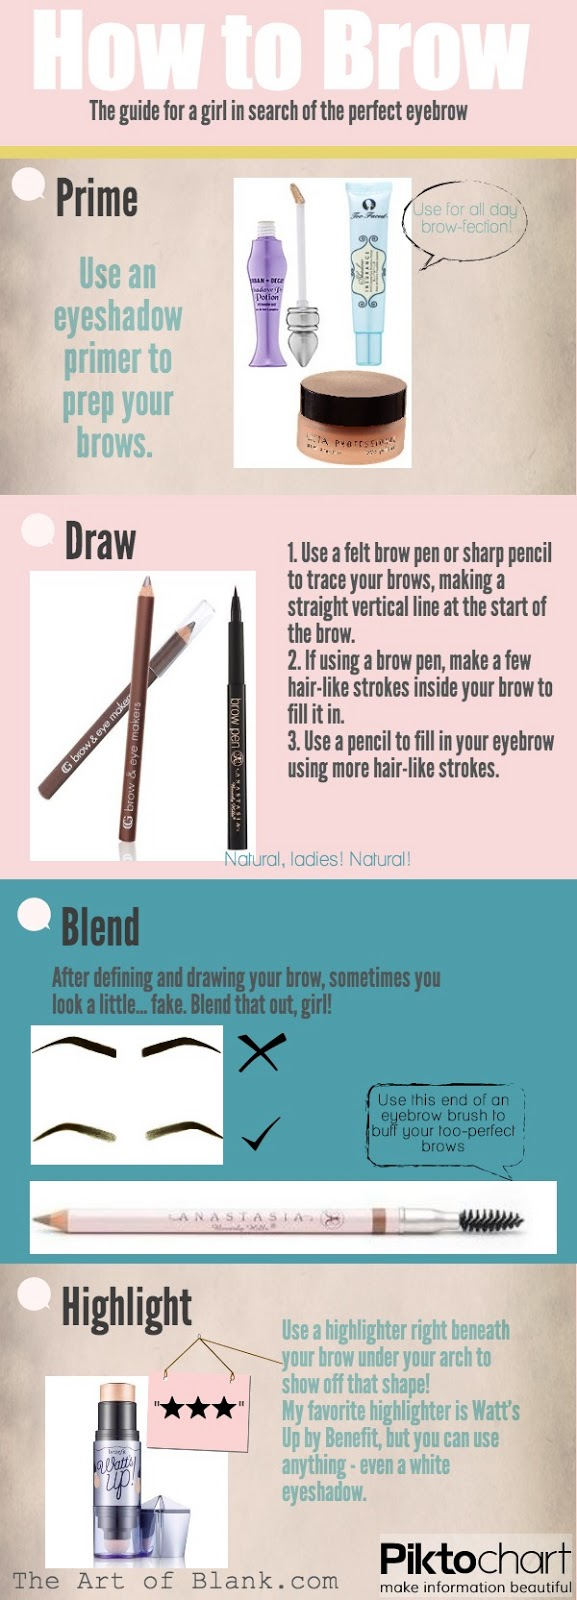 eyebrow tutorial, how to do eyebrows, eyebrow infographic